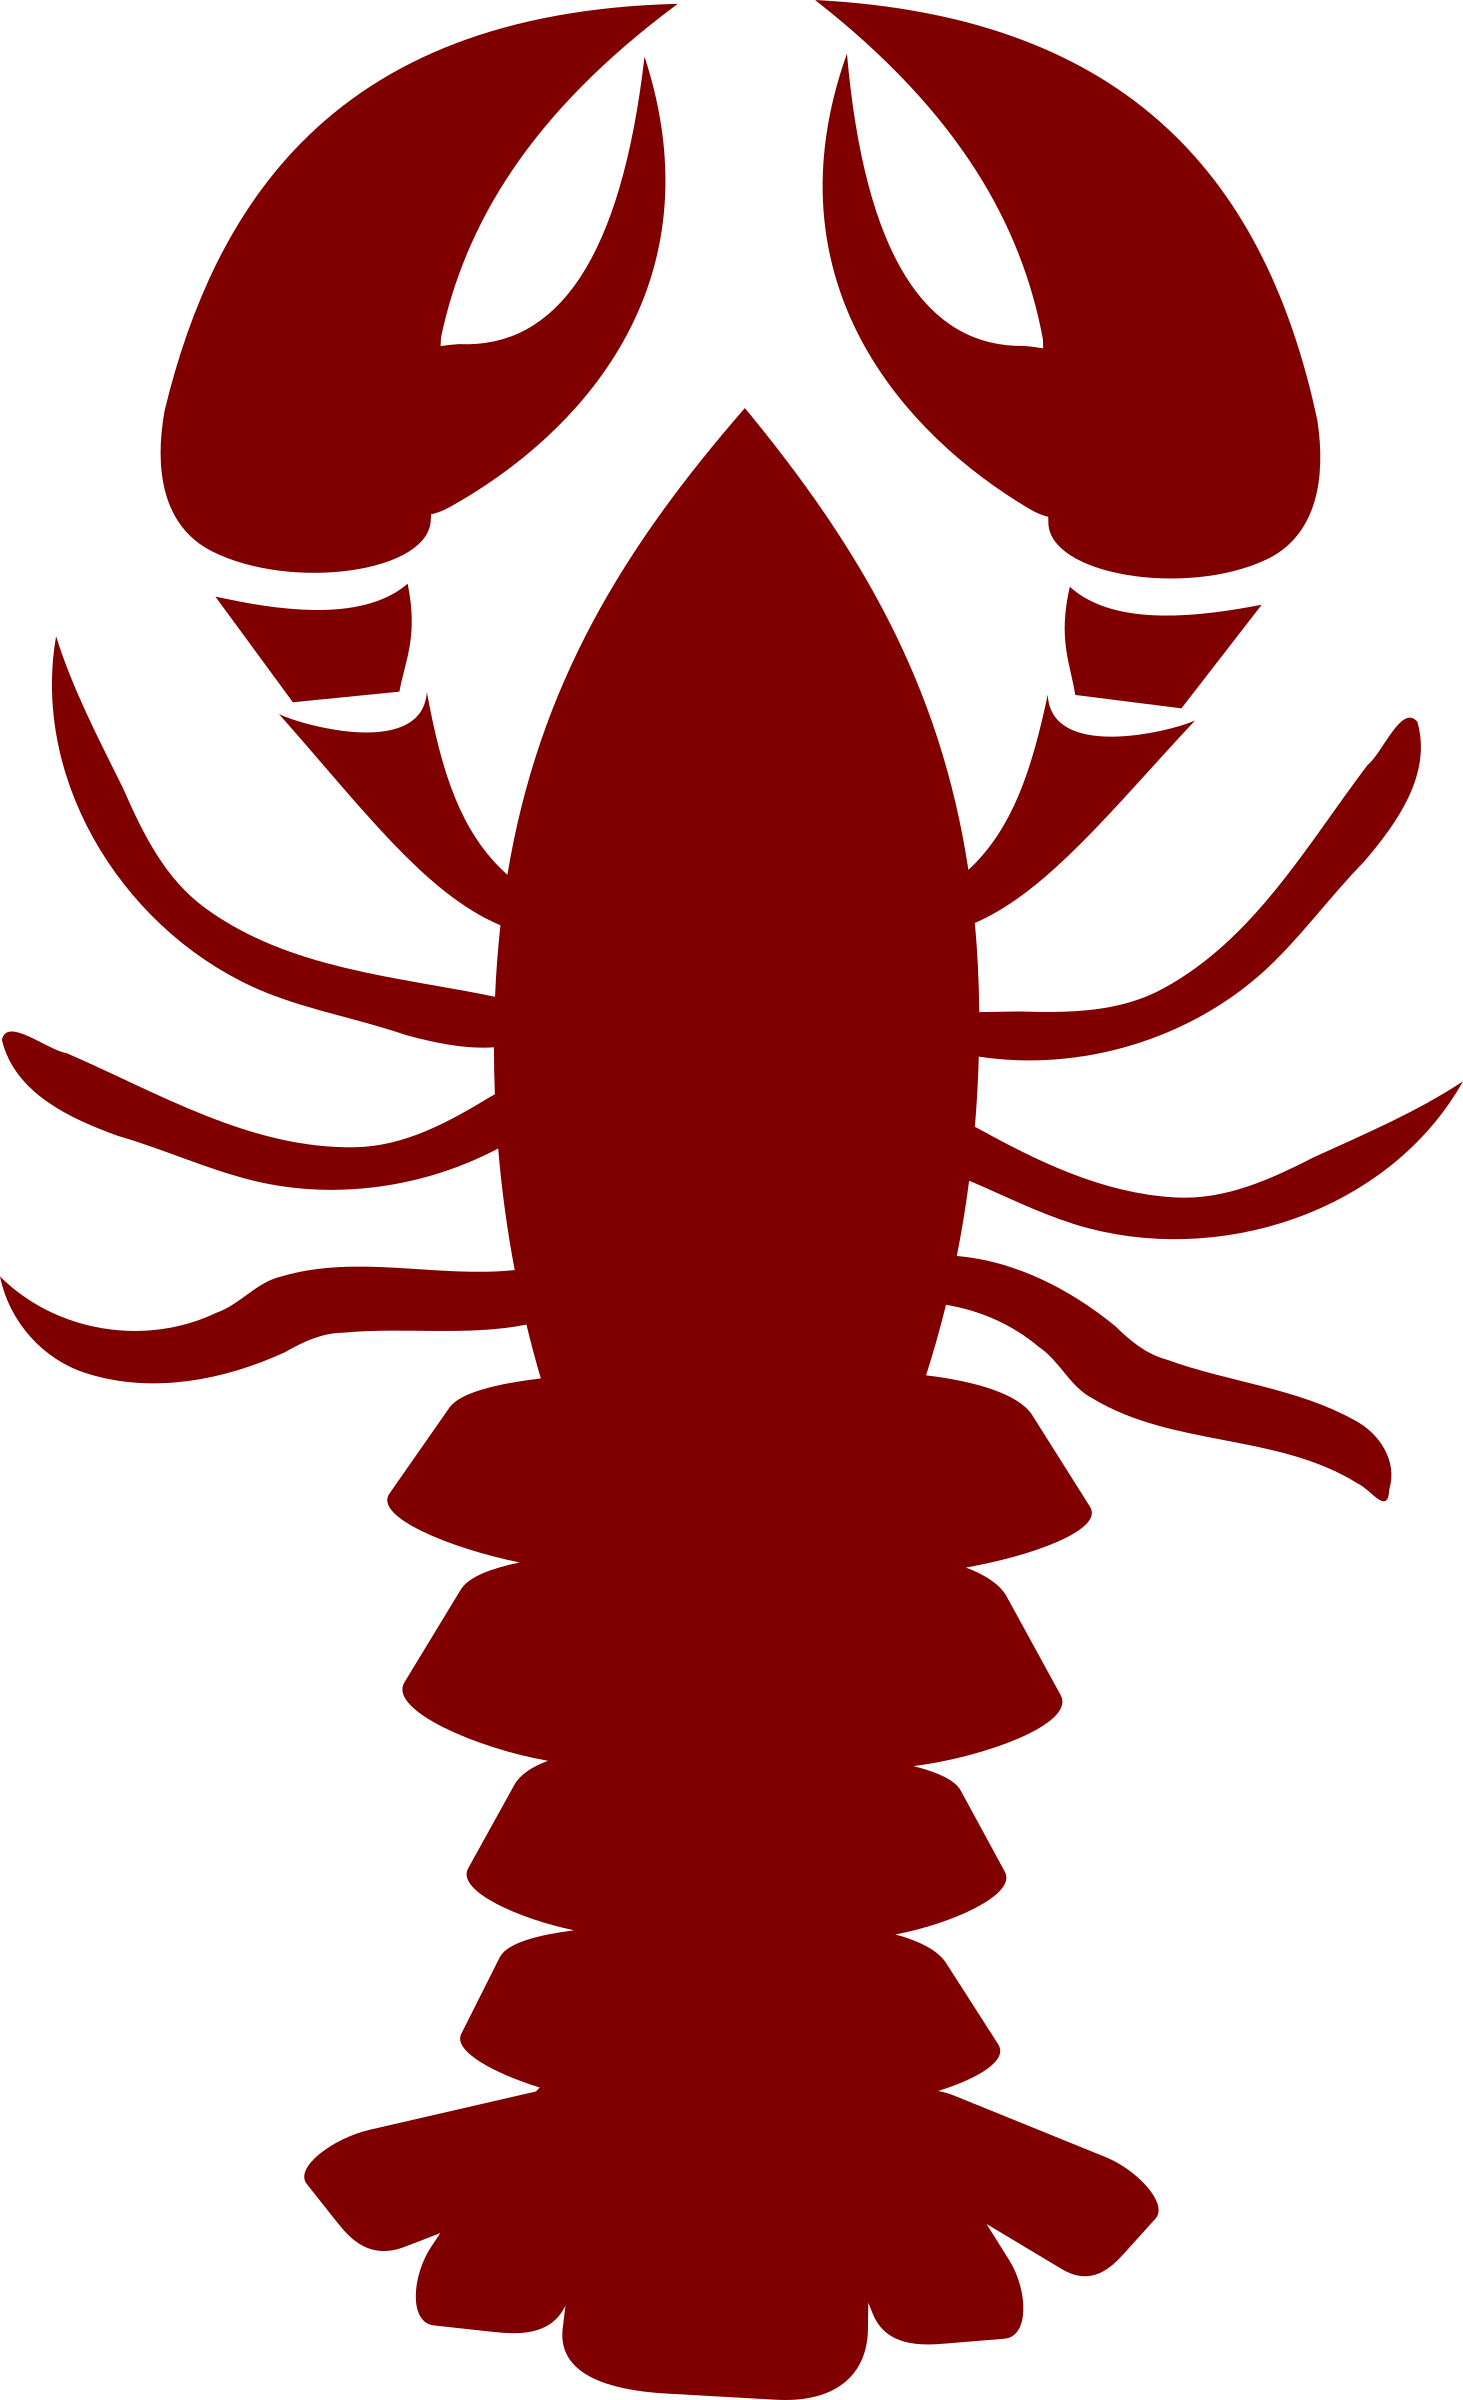 Lobster Clip Art Black And White | Clipart Panda - Free ...